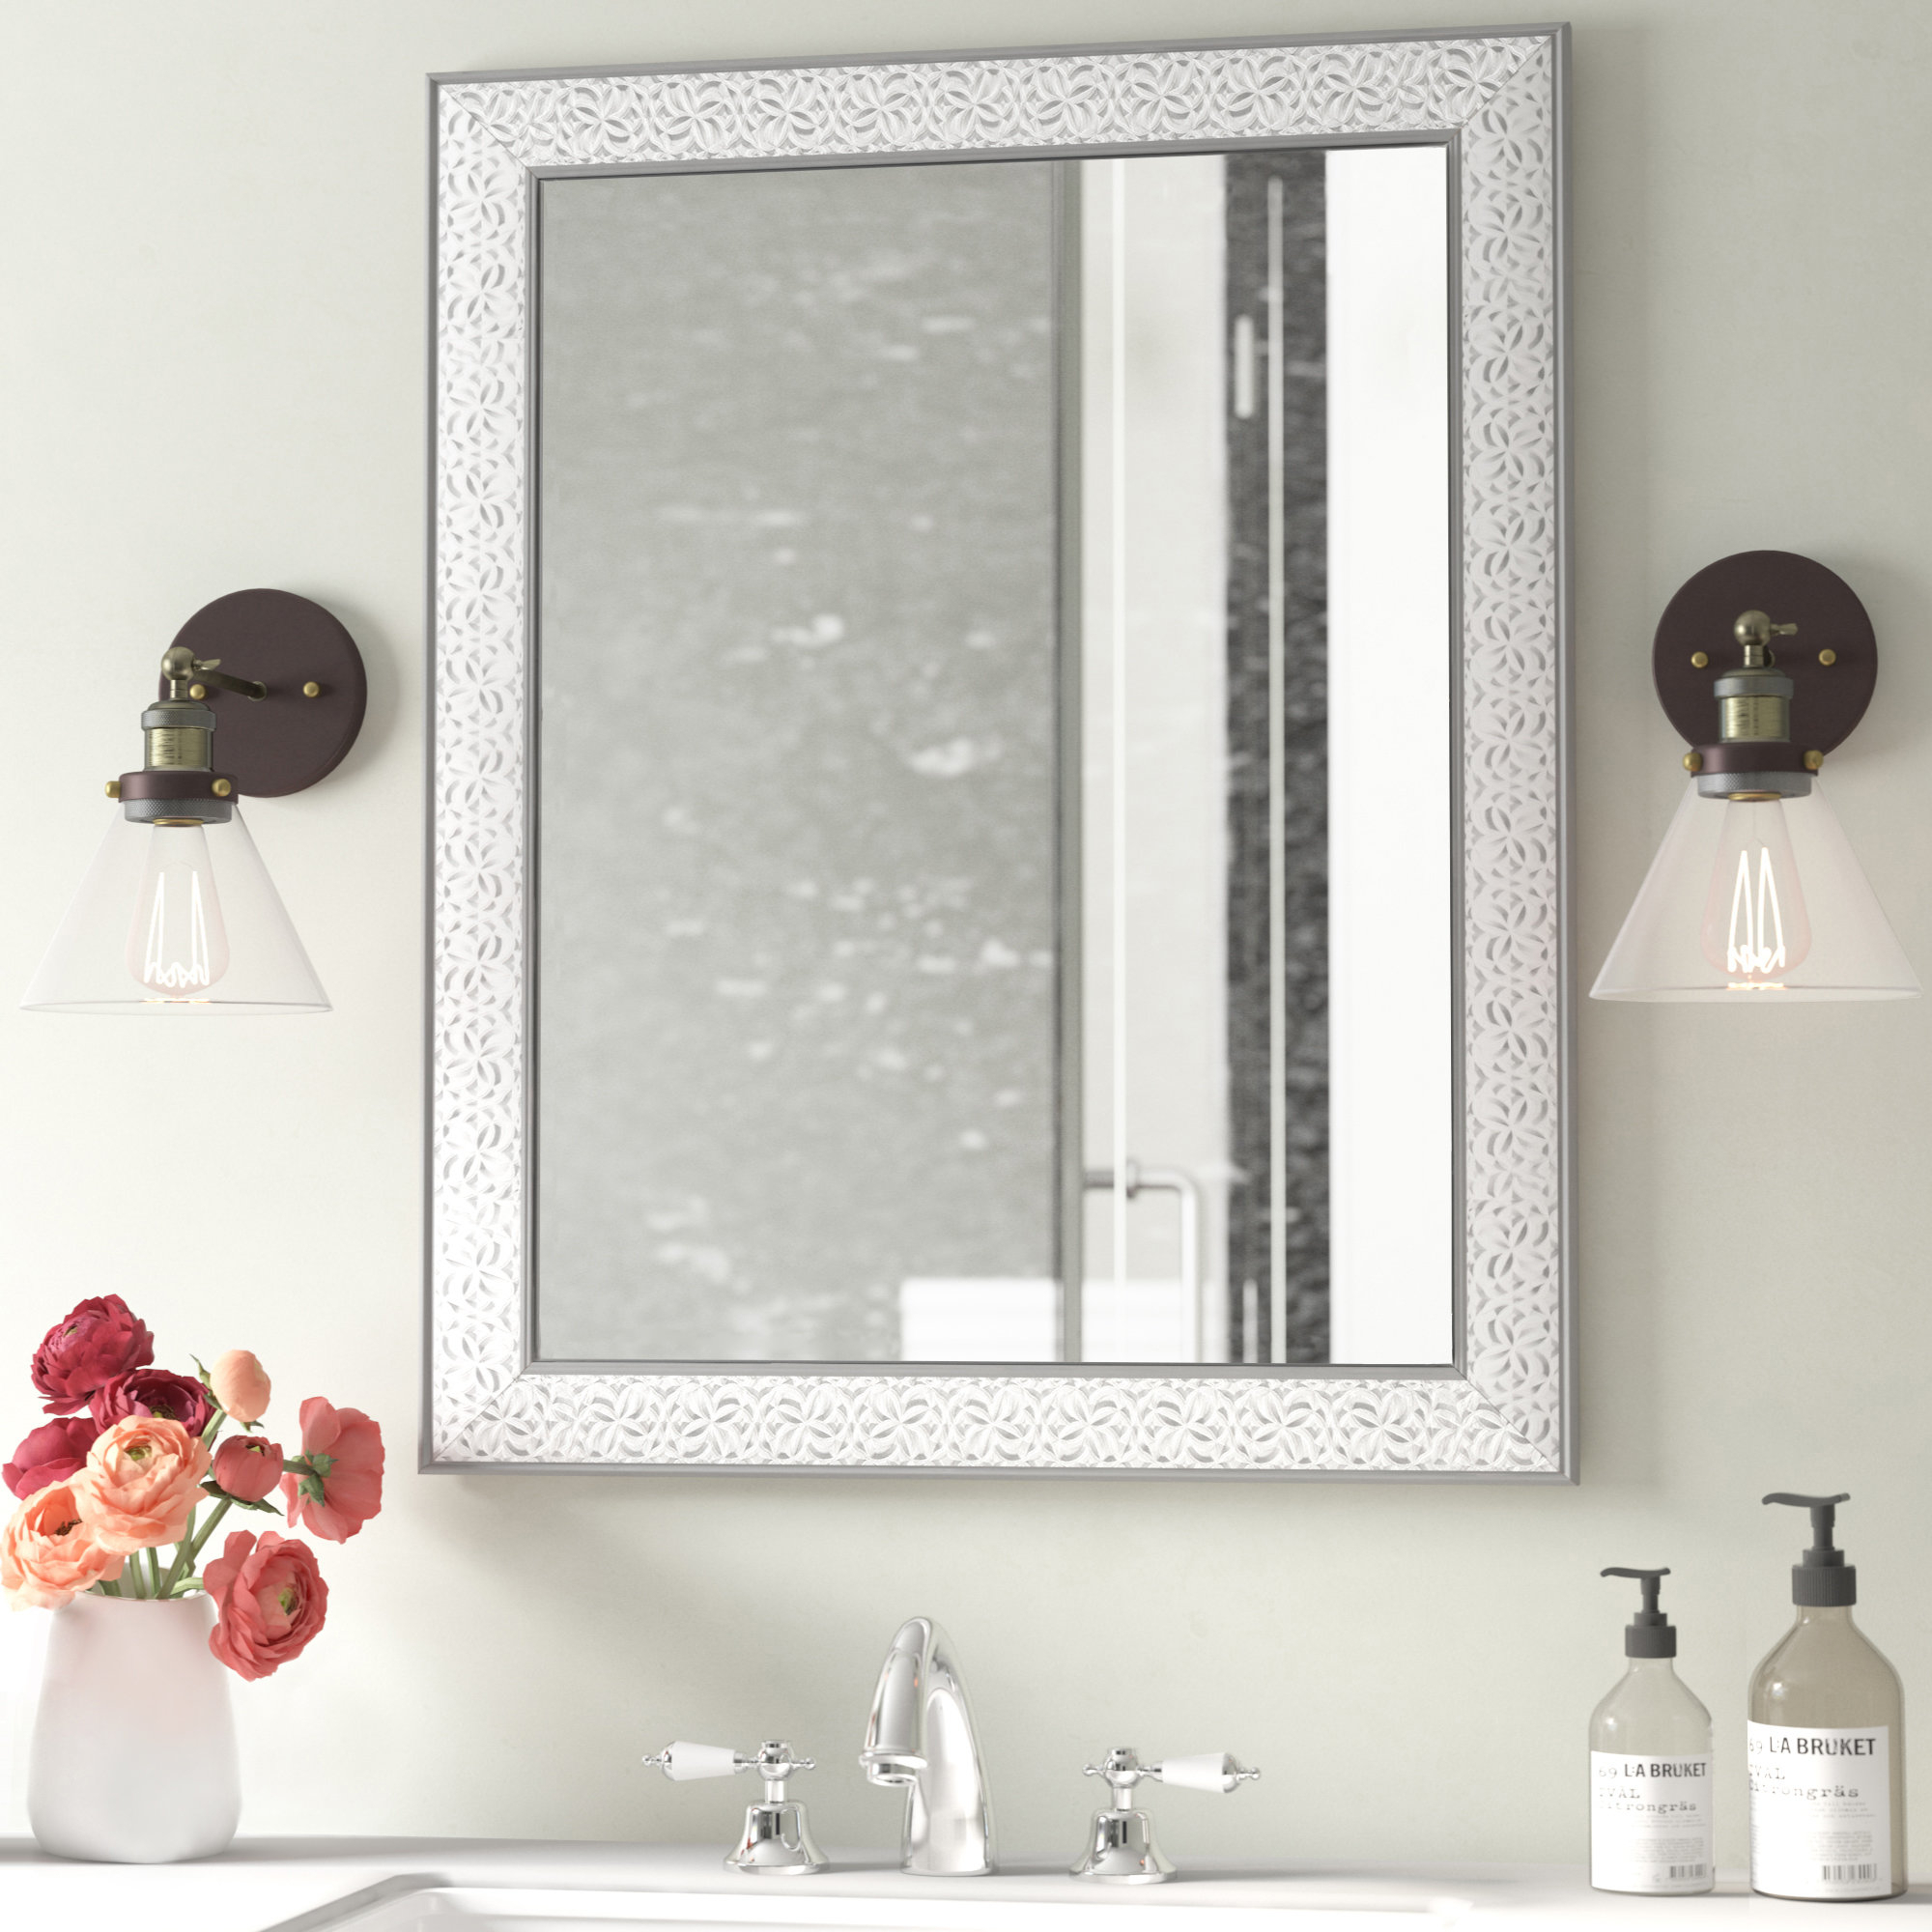 18X30 Mirror | Wayfair Intended For Hilde Traditional Beveled Bathroom Mirrors (Image 1 of 20)